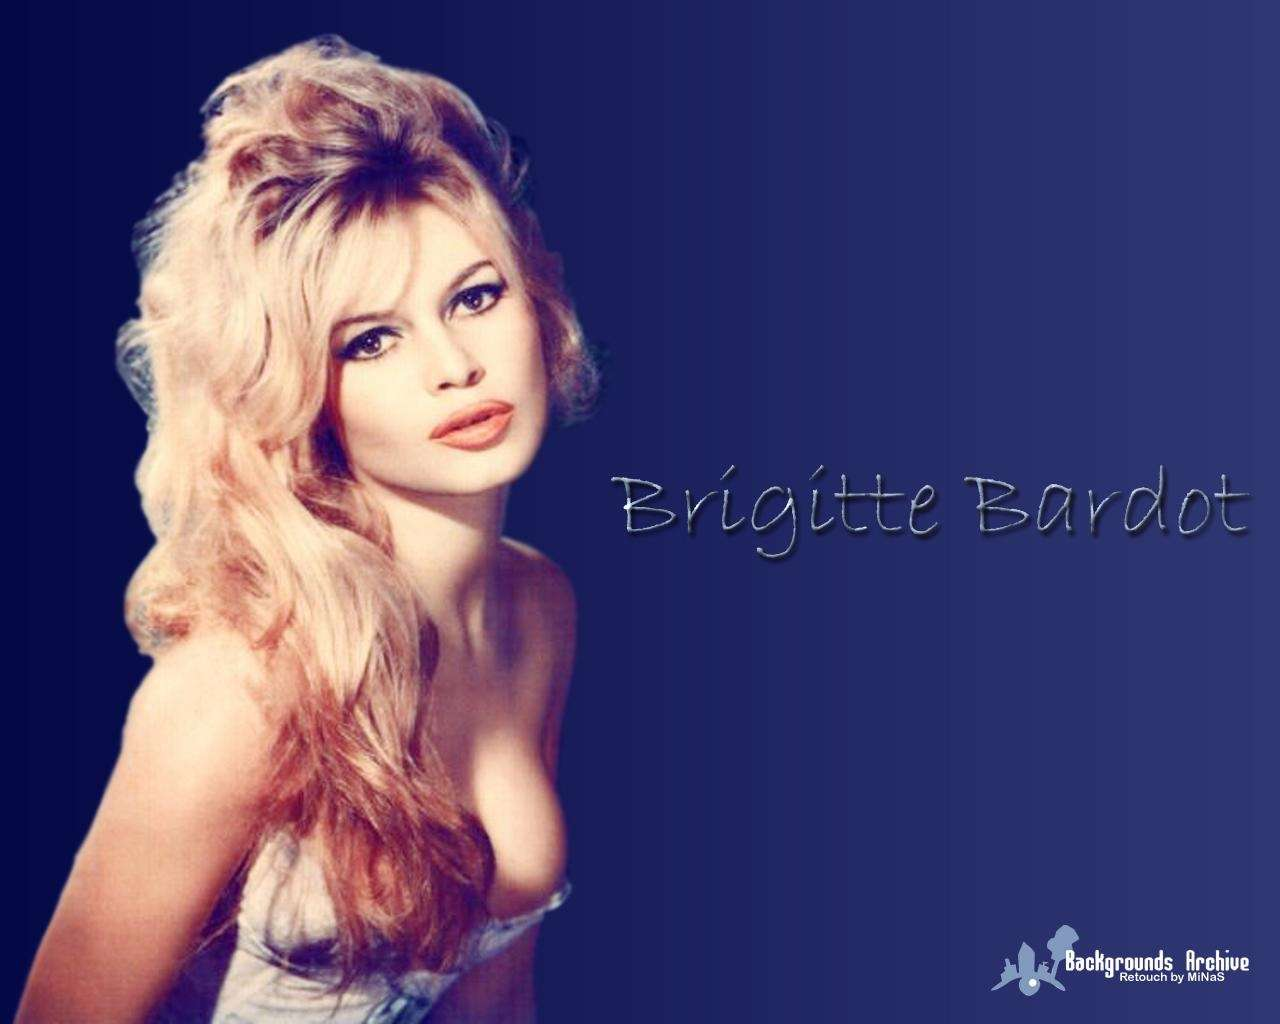 Www 3d God Wallpaper Com Brigitte Bardot Wallpaper Hd Wallpapers